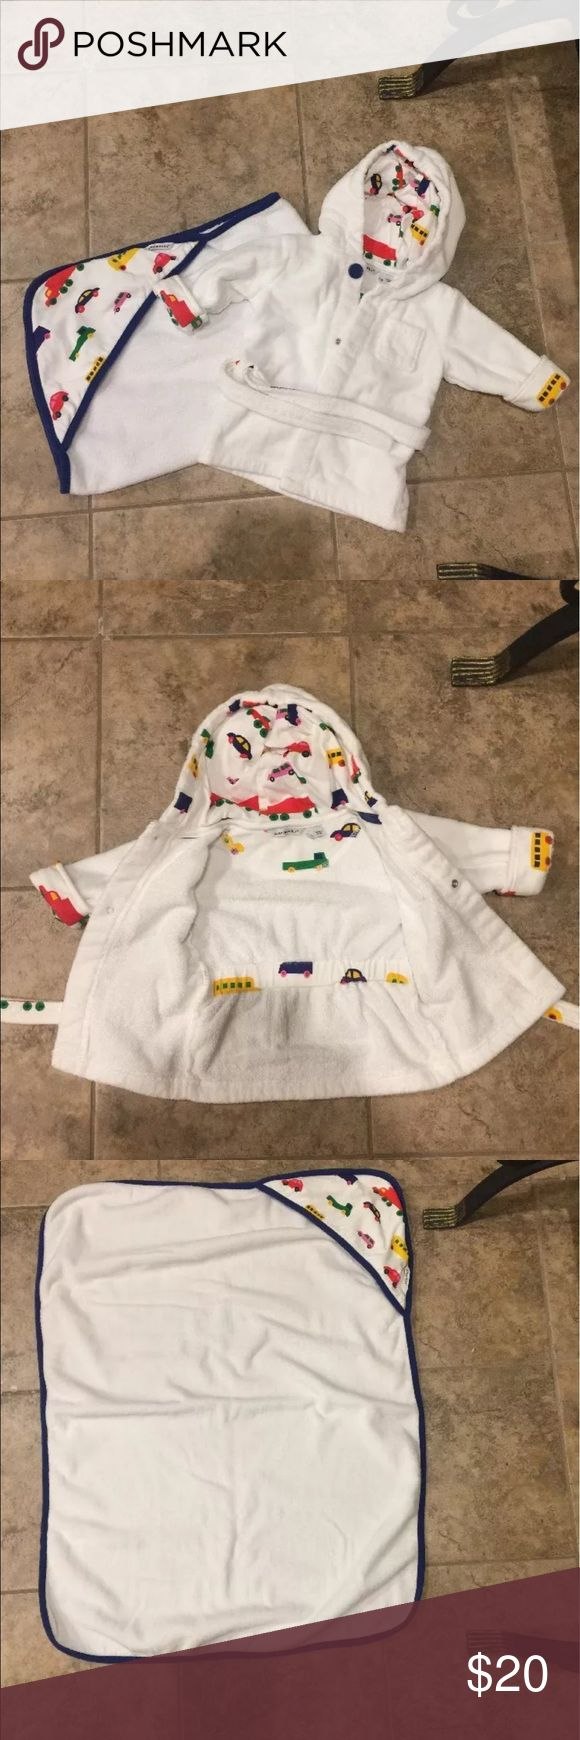 Marimekko Infant Boys Vehicle Hooded Towel & Robe Marimekko Infant Boys Vehicles Hooded Towel & Robe Excellent condition, no flaws or defects. Only washed but have never been used. Marimekko Other